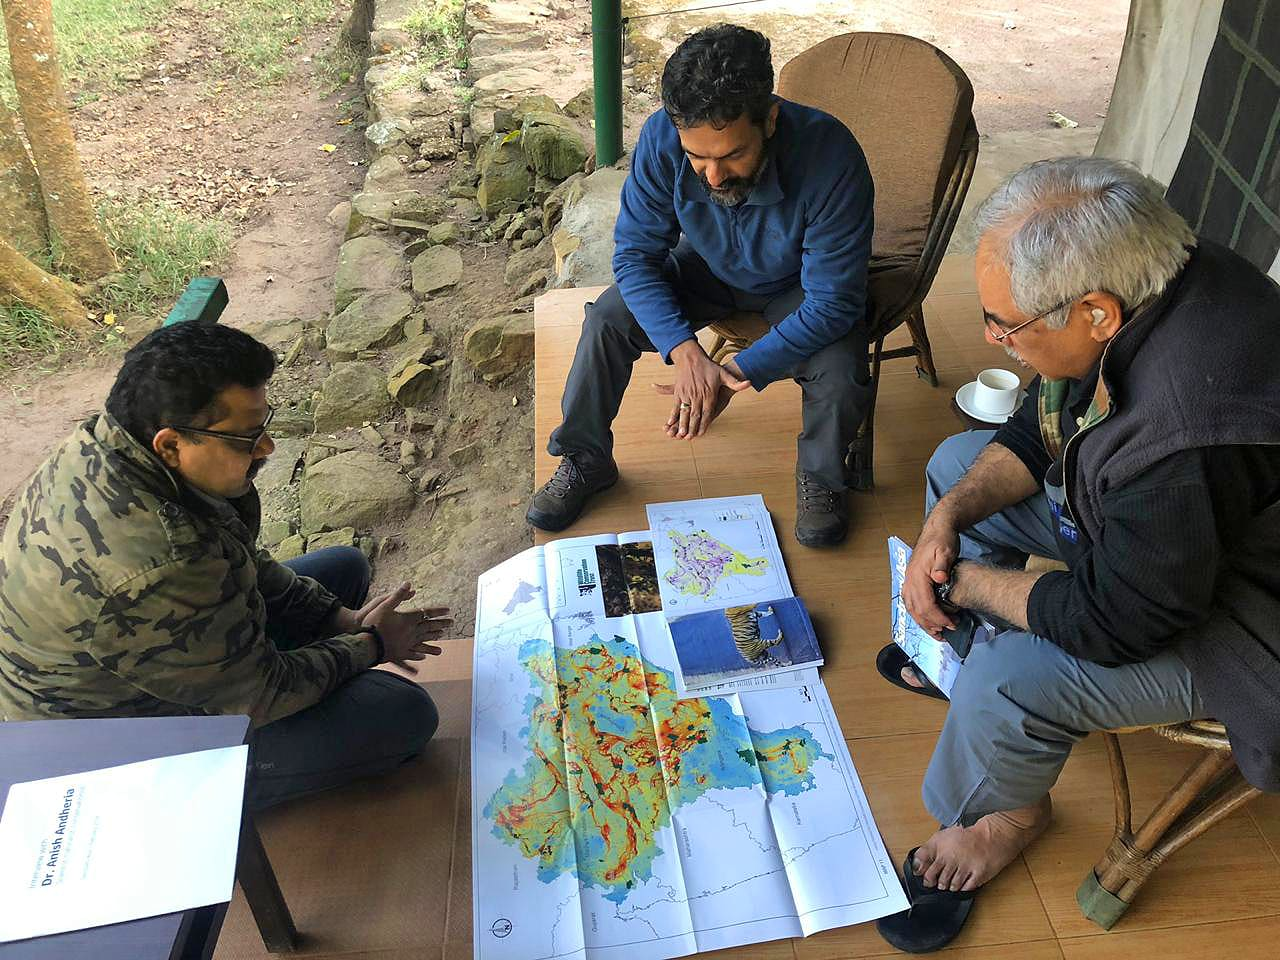 Anish Andheria discussing WCT's whitepaper on linear infrastructure with Karnataka's forest officials.  Photo courtesy: Amoghavarsha